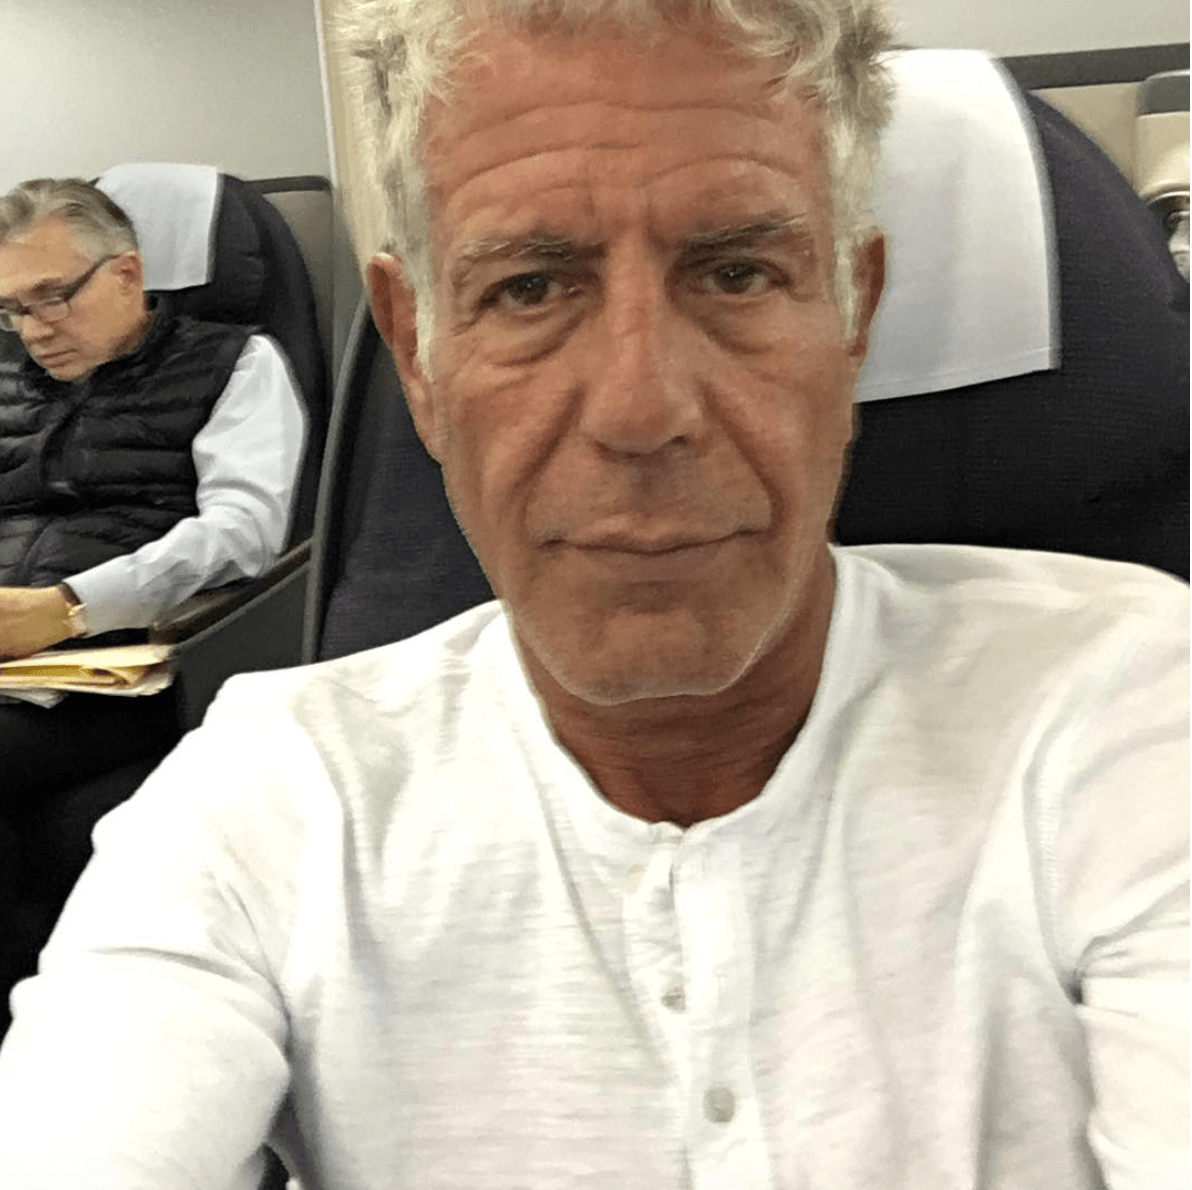 anthony bourdain kitchen confidential touchless faucet 15 things you probably didn 39t know about